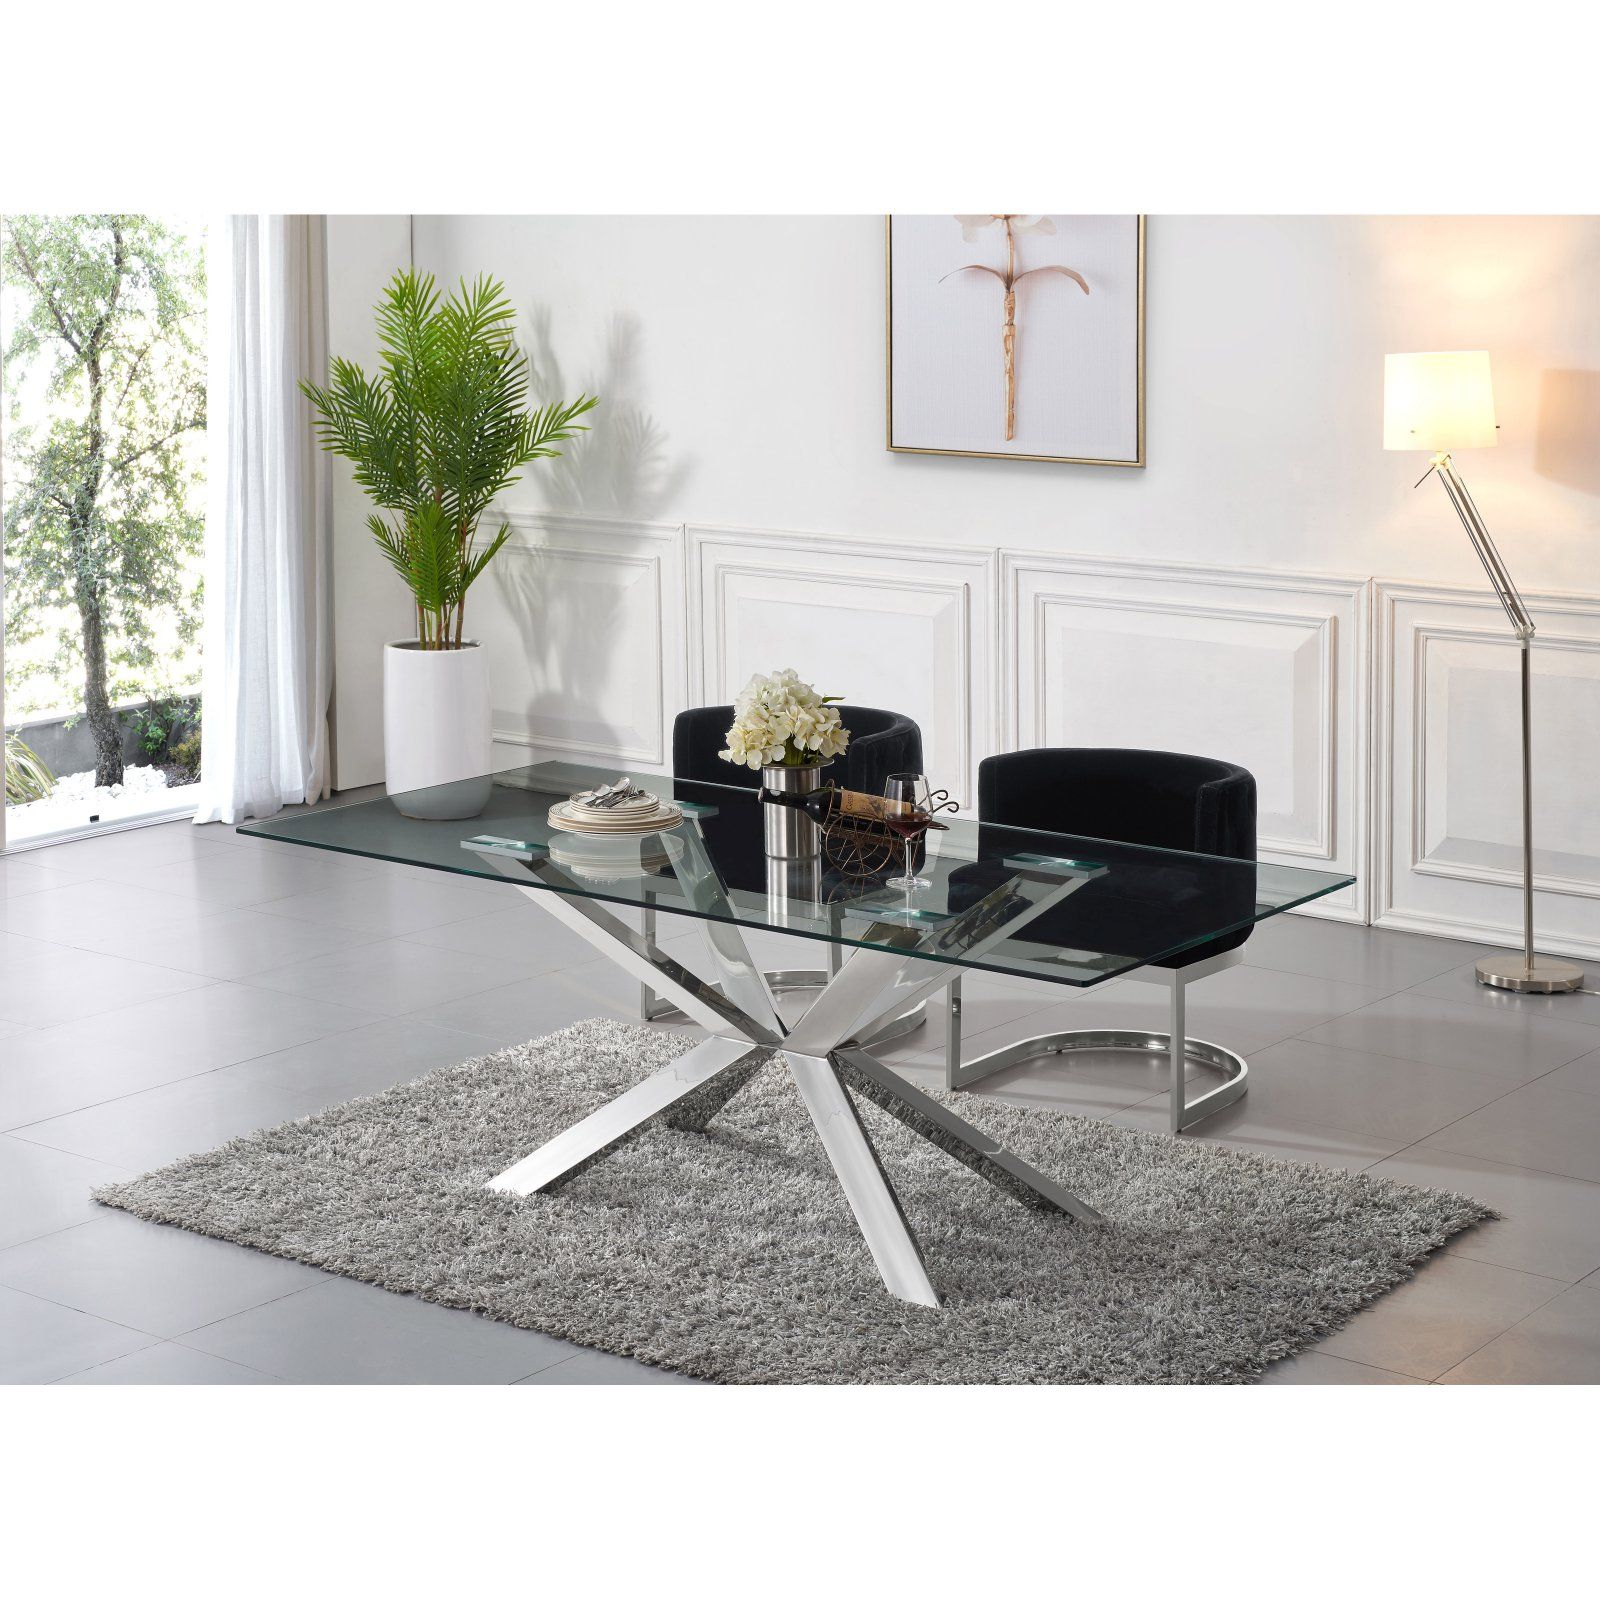 Meridian Furniture Inc Juno Chrome Dining Table Chrome Dining